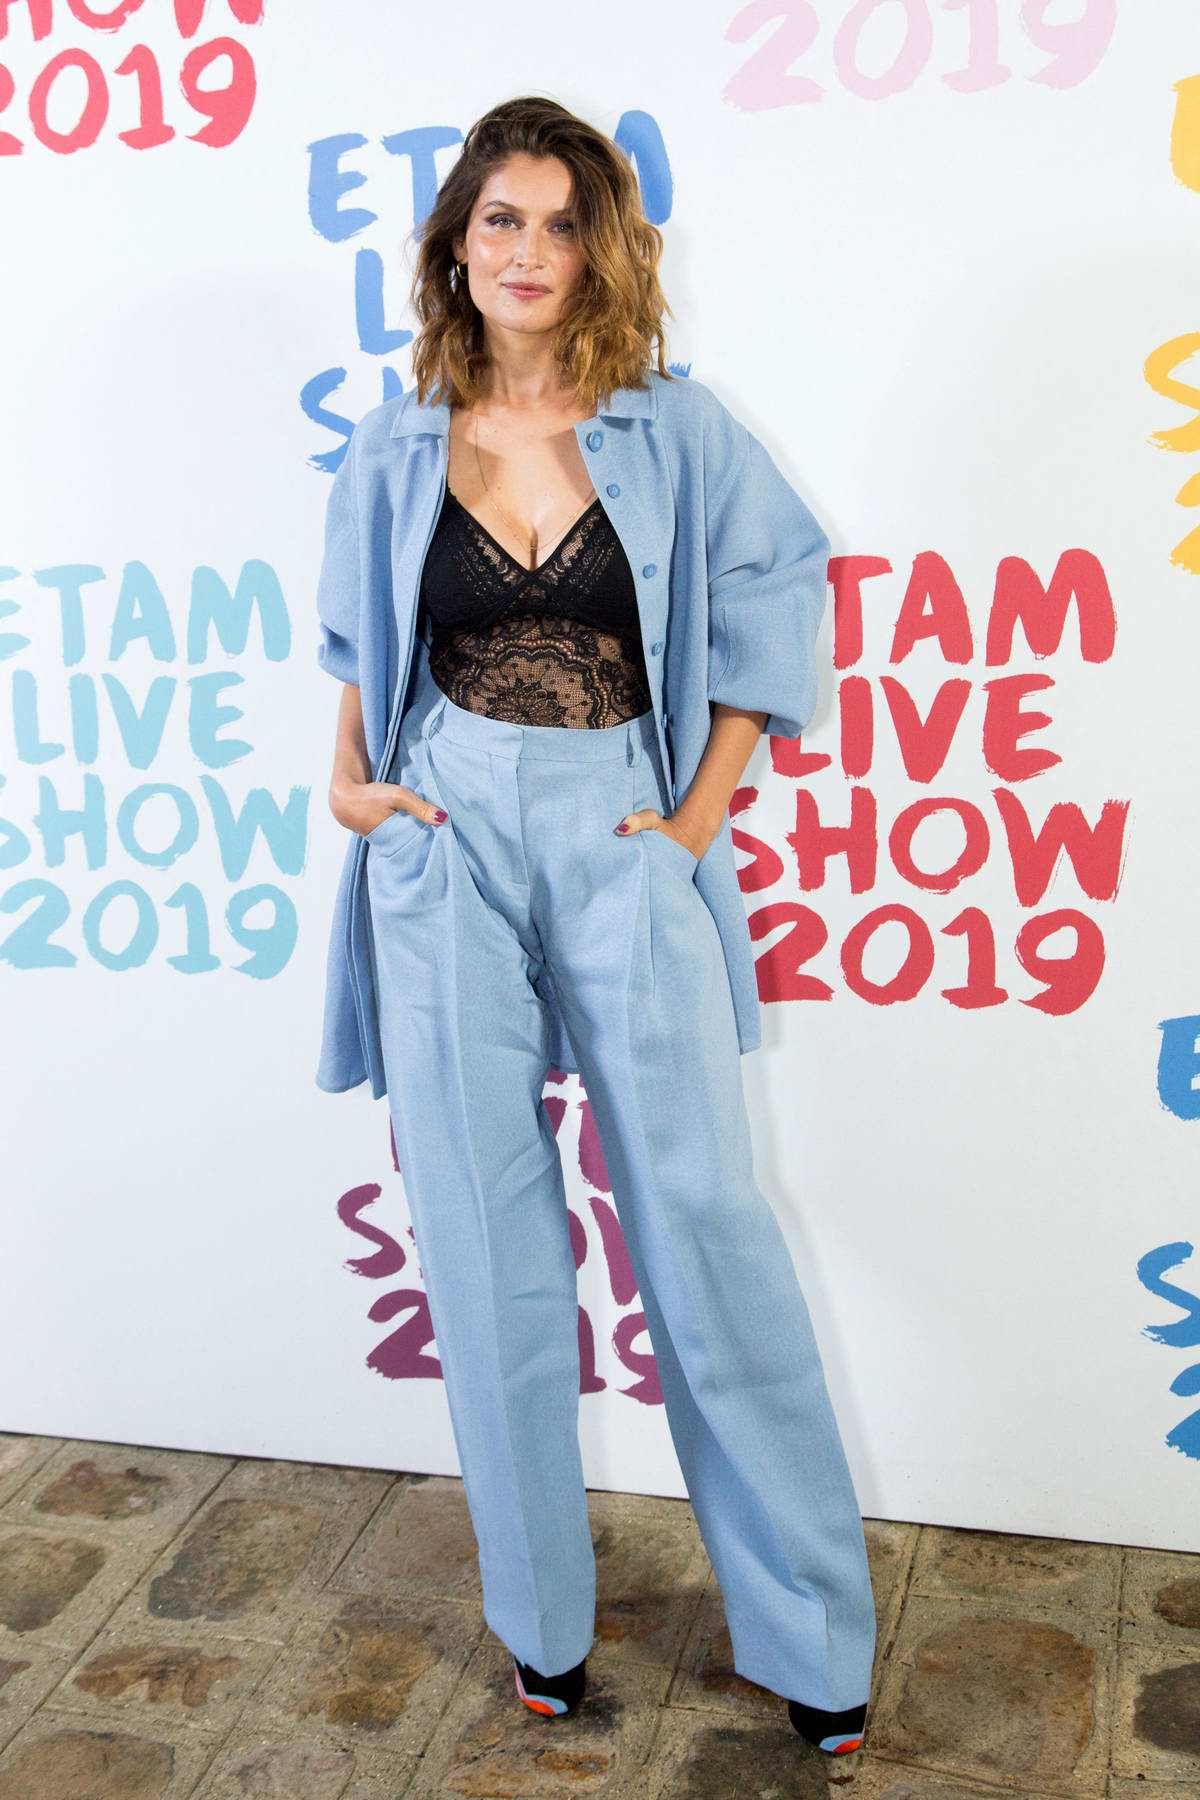 Laetitia Casta attends the Etam Live show 2019 during Paris Fashion Week, Spring/Summer 2020 in Paris, France